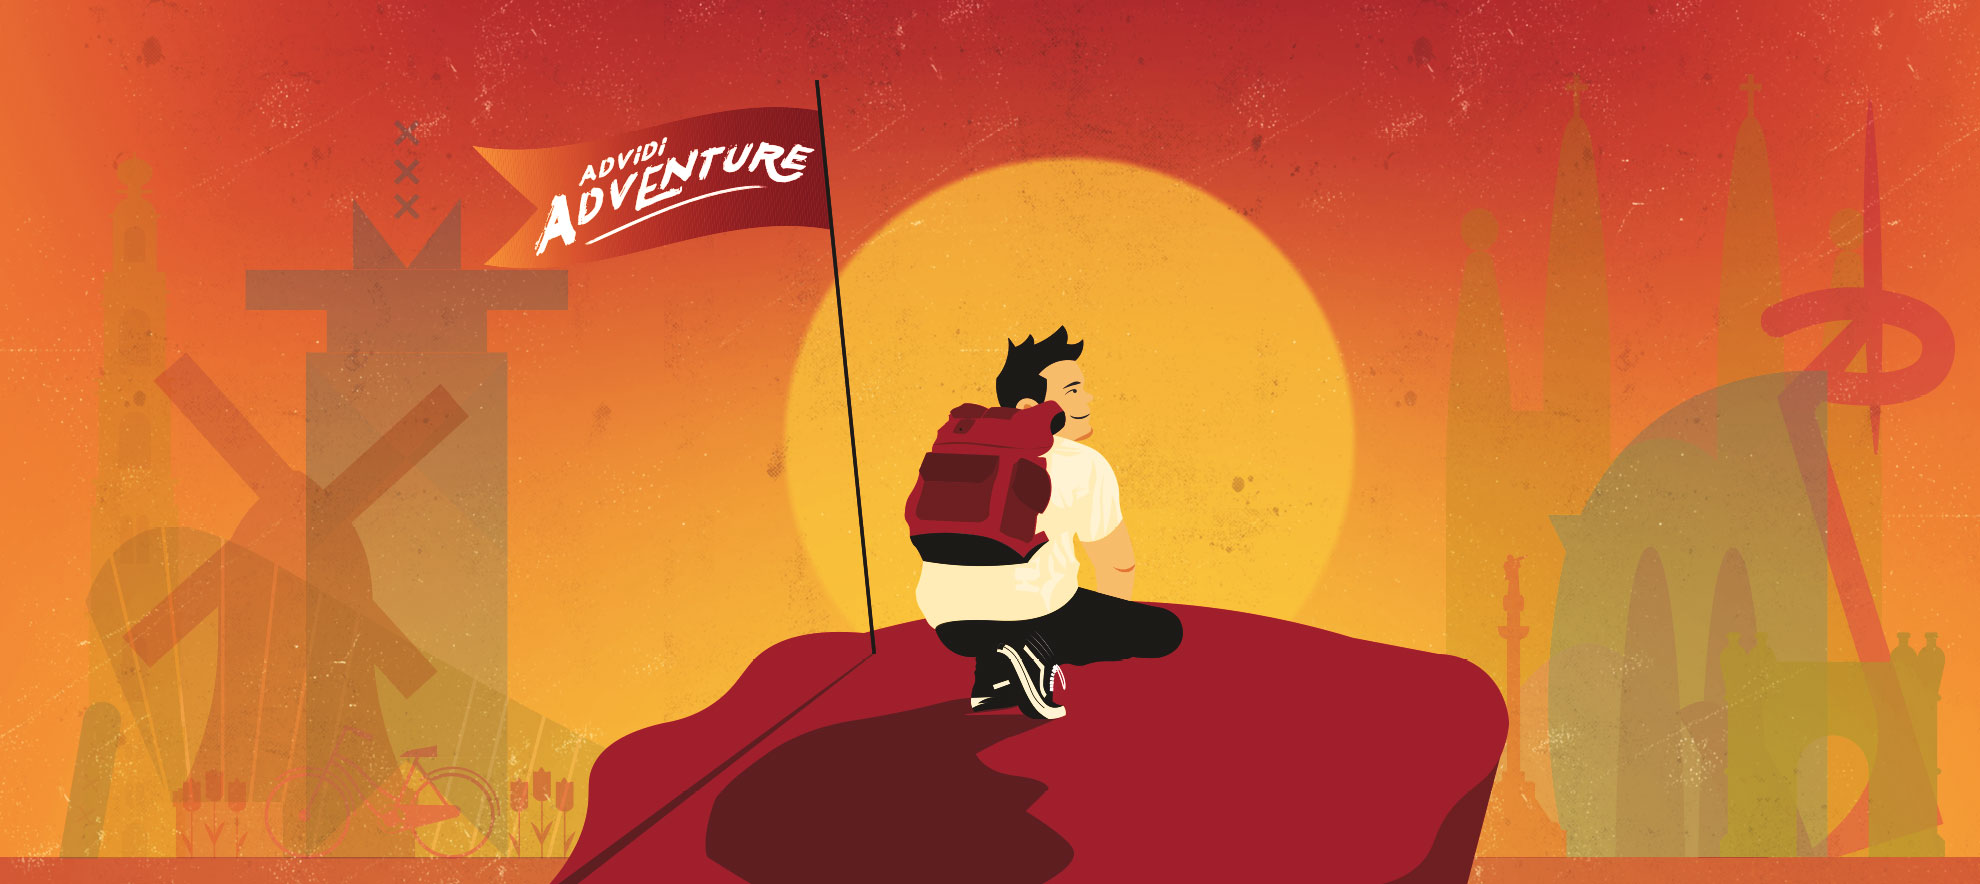 Announcing the 2018 Advidi Adventure Winners